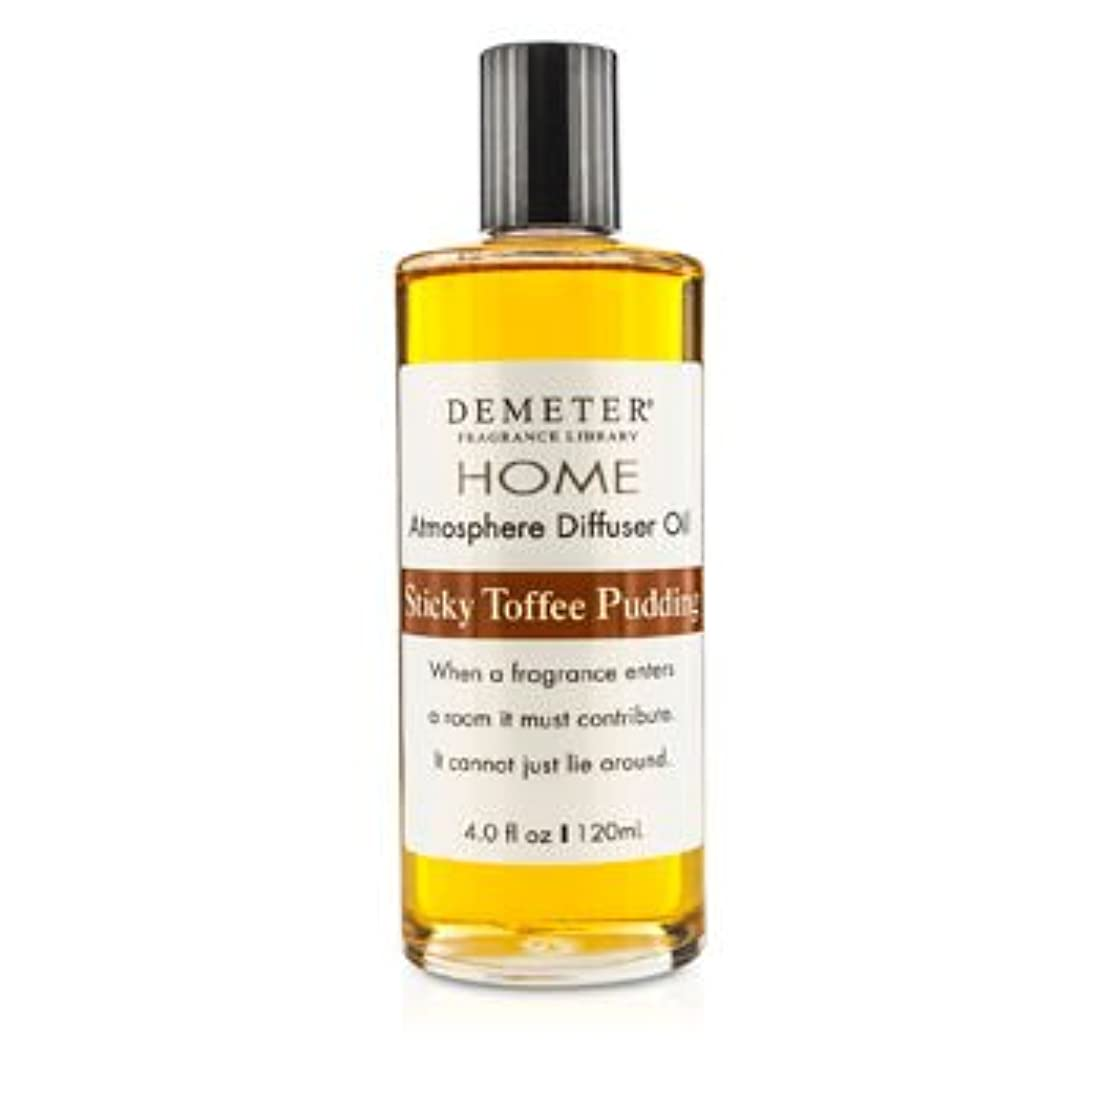 [Demeter] Atmosphere Diffuser Oil - Sticky Toffee Pudding 120ml/4oz